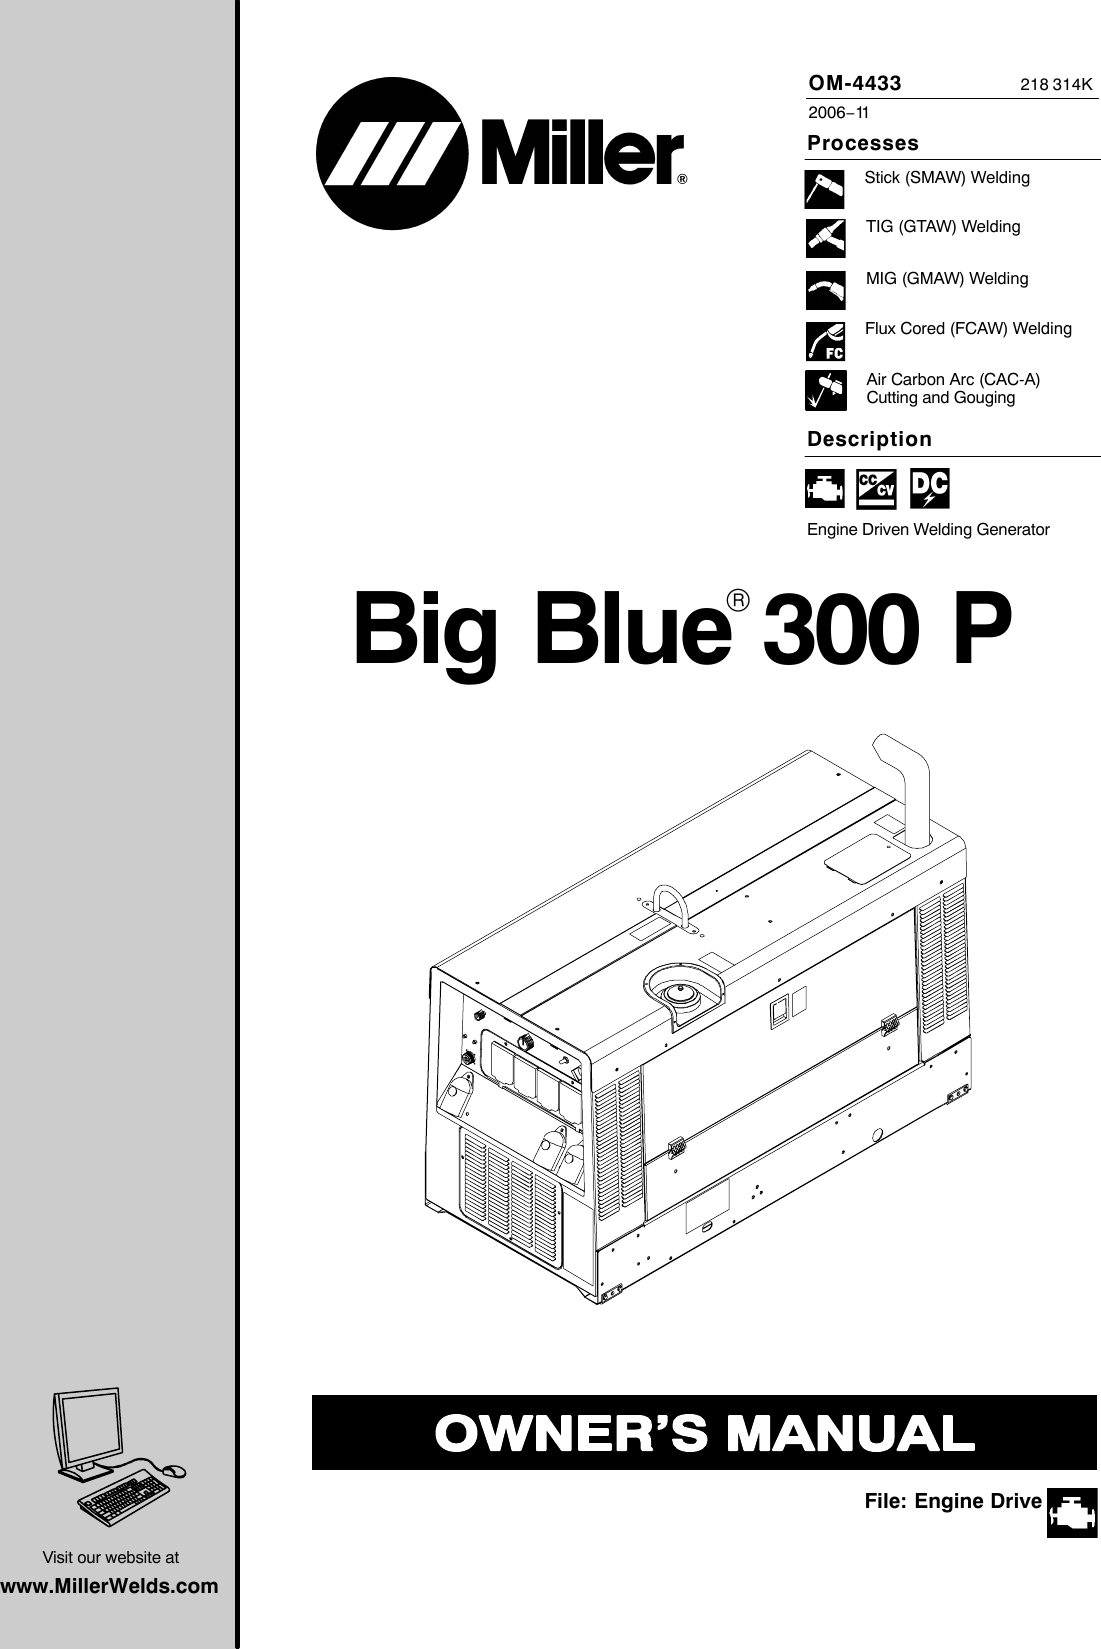 Miller Electric Big Blue 300 P Users Manual O4433k_mil